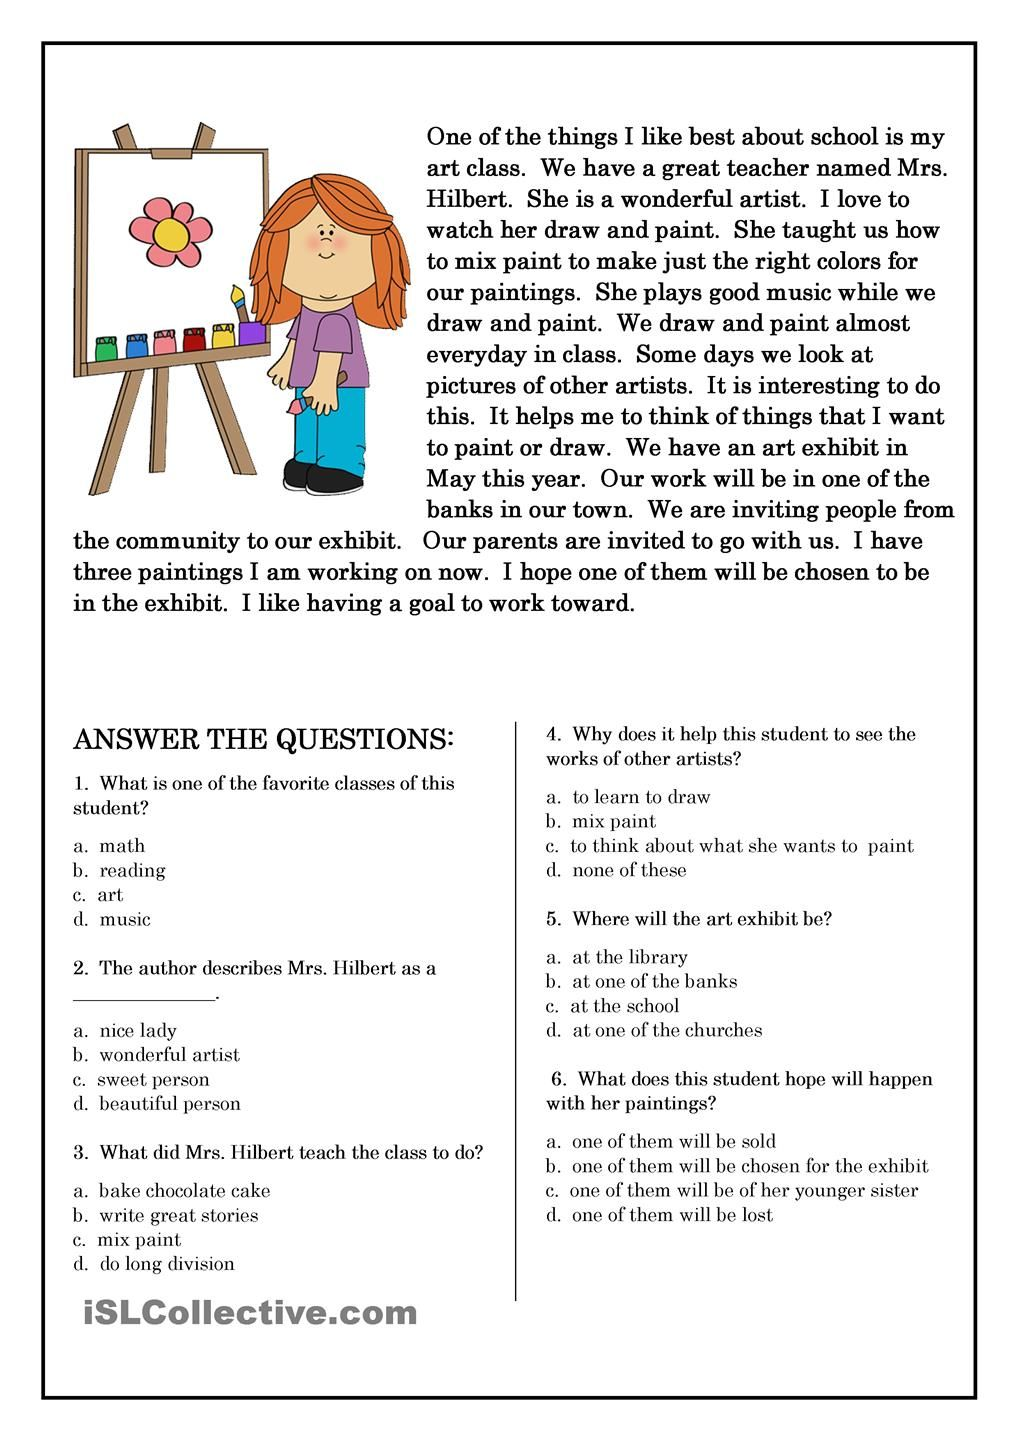 worksheet Free Printable Reading Worksheets 78 best images about reading comprehension on pinterest simple sentences grade 1 and english short stories